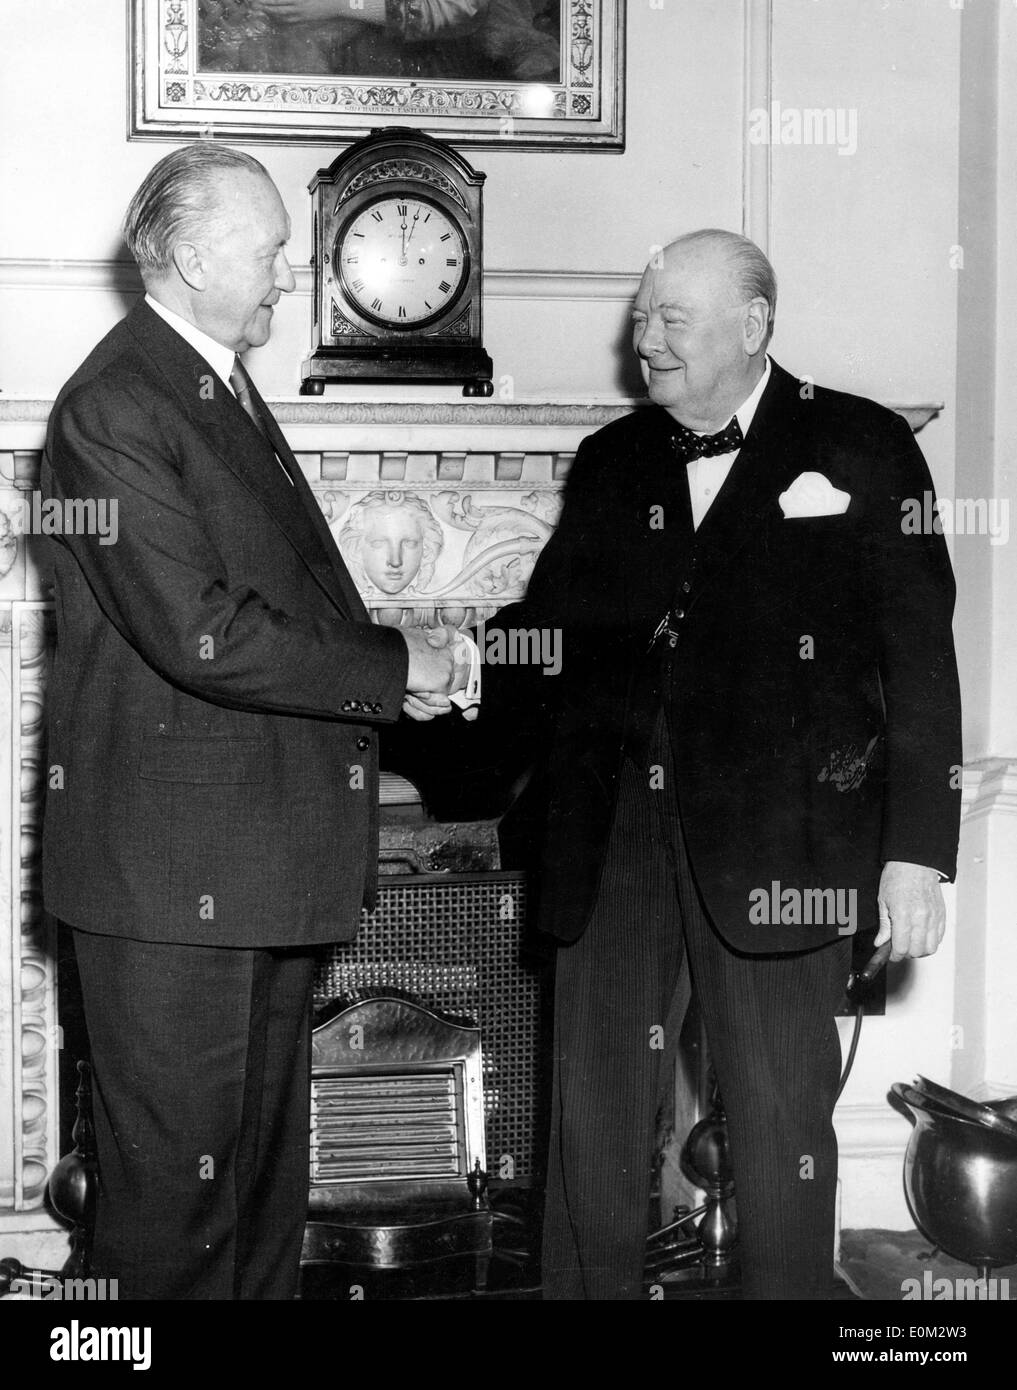 Sir Winston Churchill greets Dr. Adenauer - Stock Image